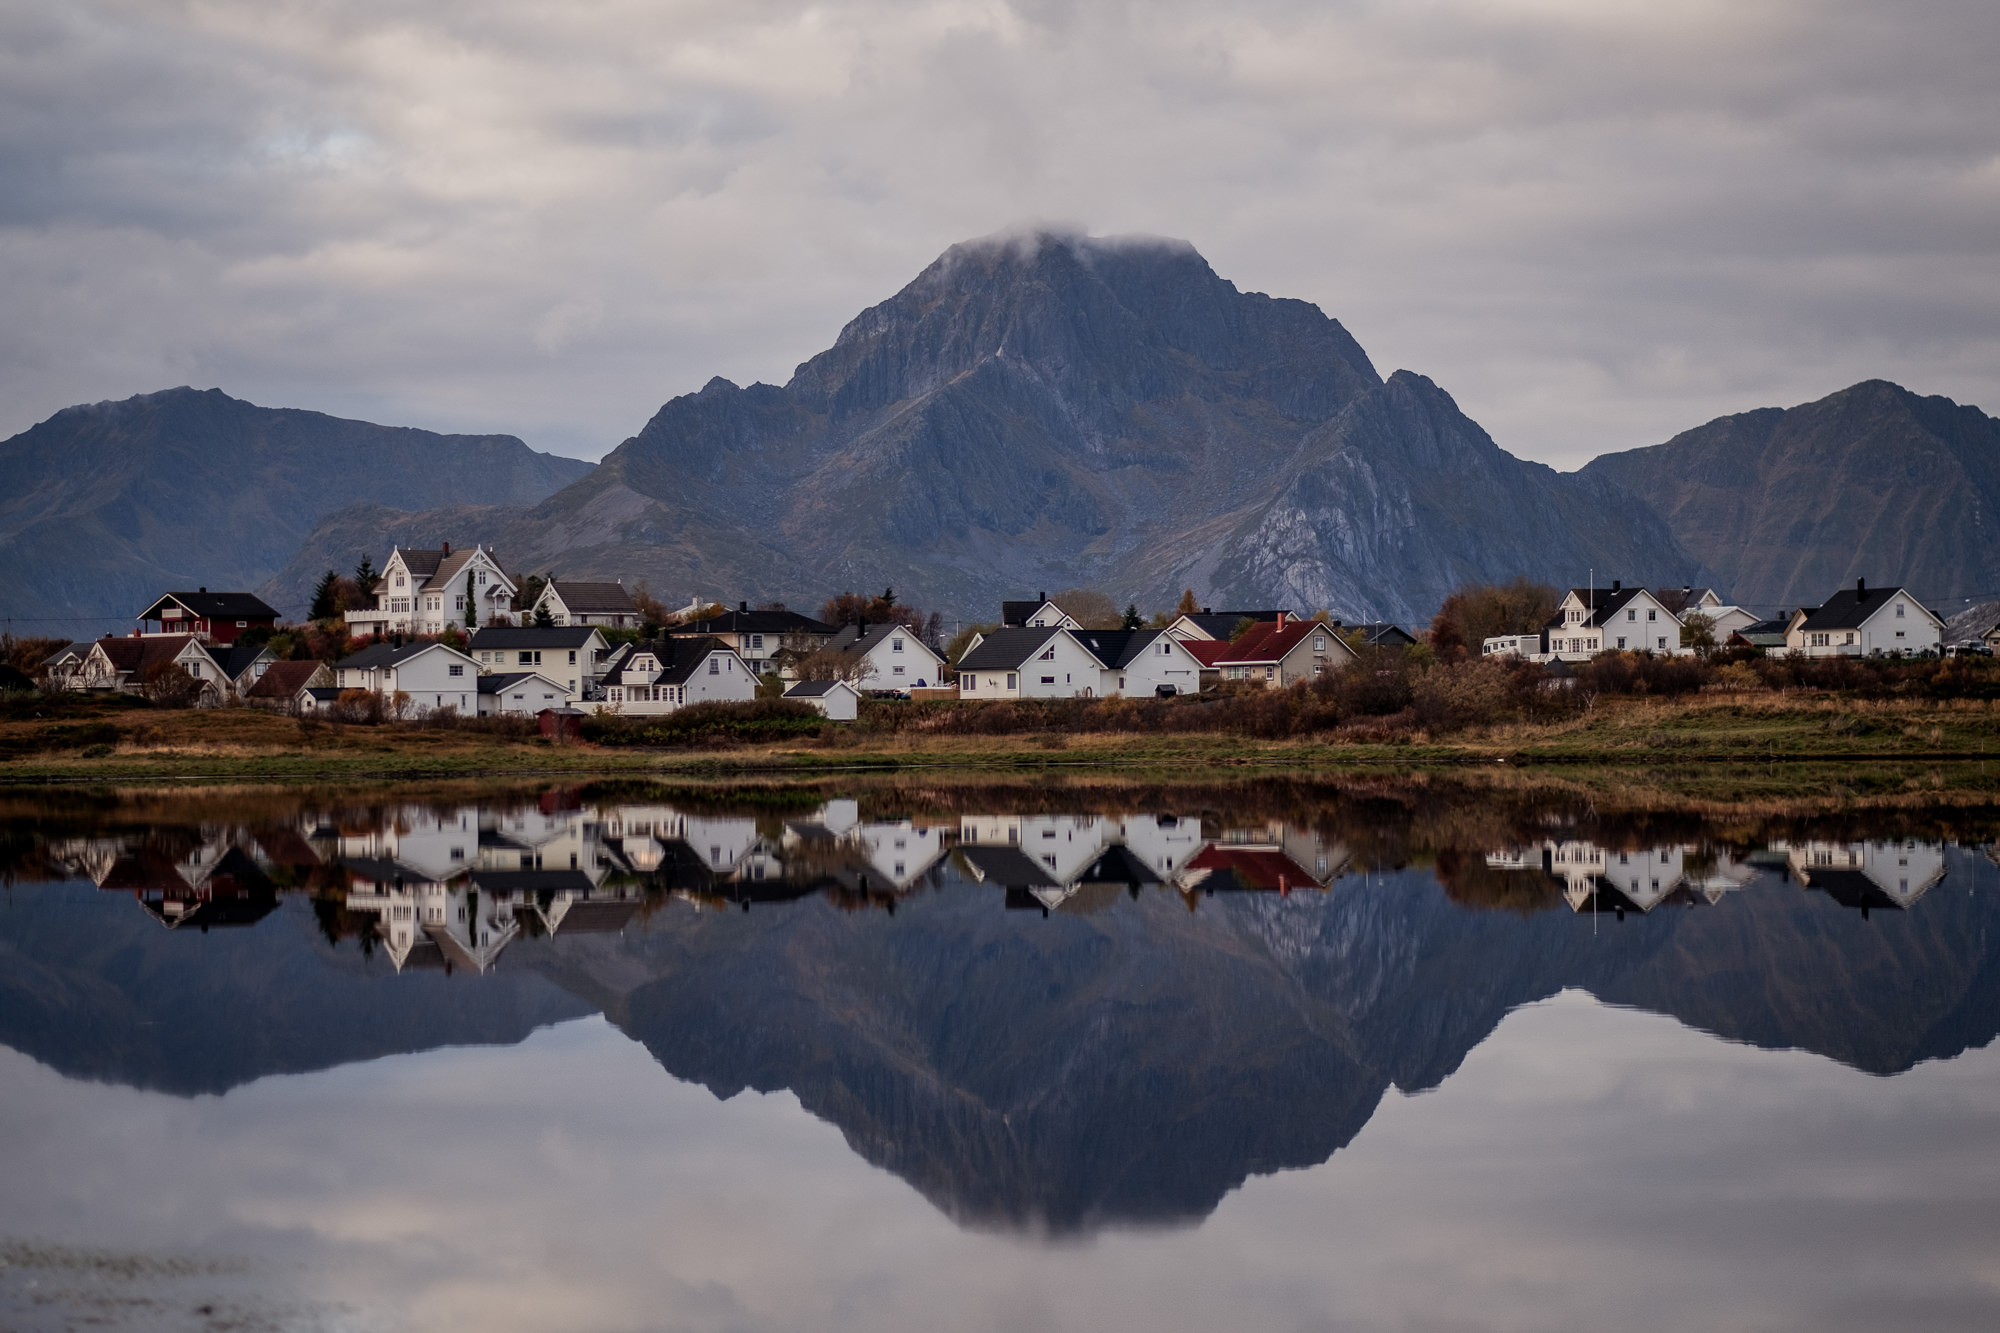 Stunning landscape charming town photo by Nordica Photography